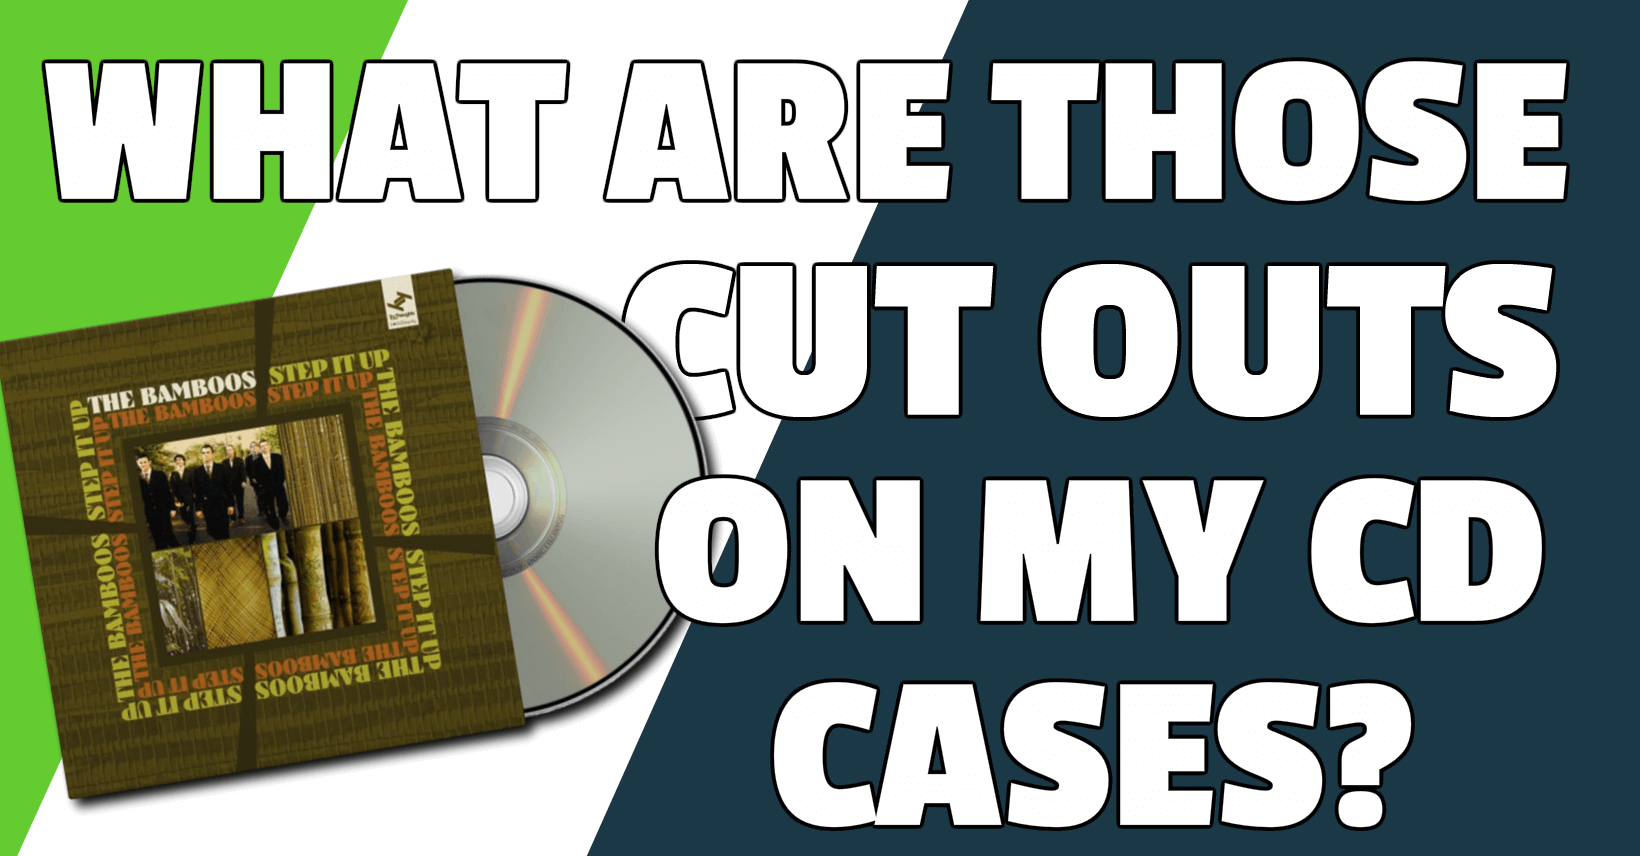 Why are there cuts in CD cases?